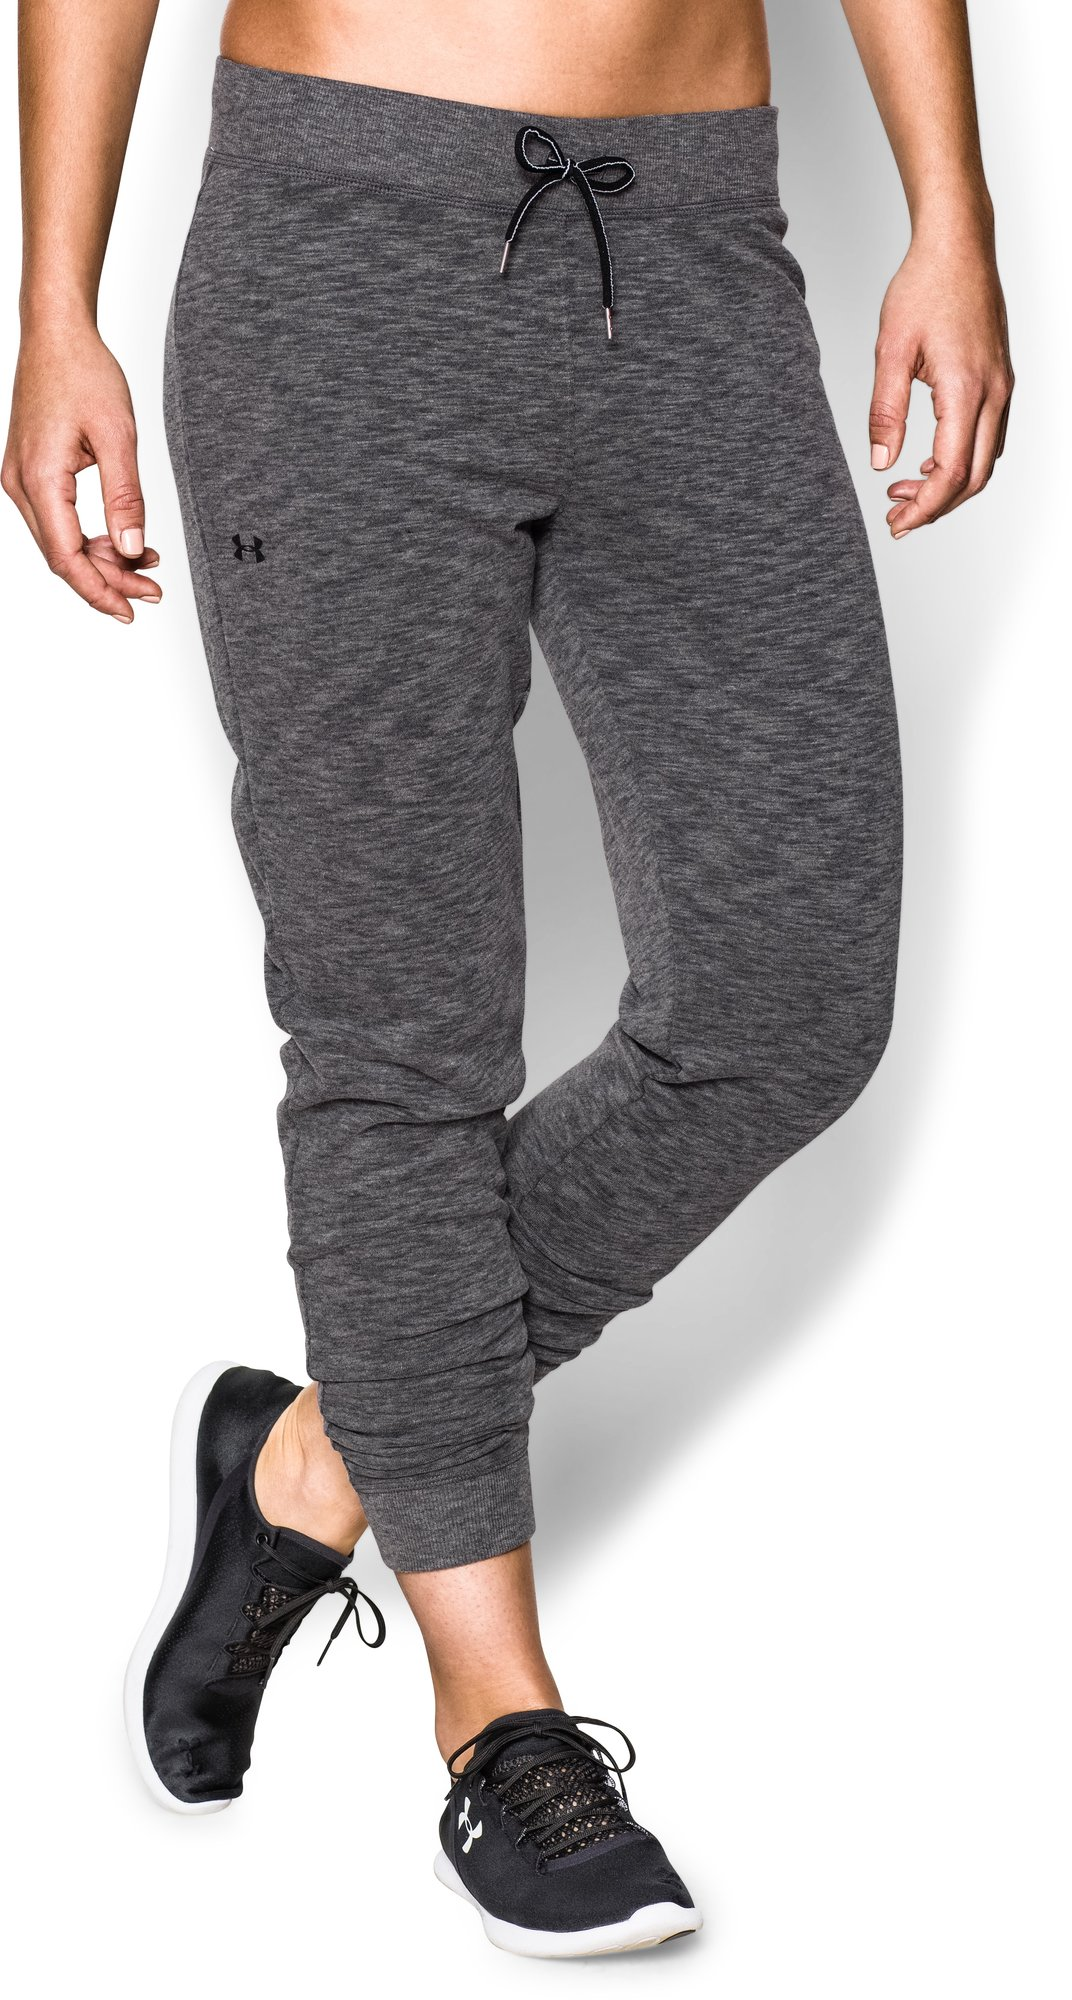 Under Armour Lady Kaleidalogo Solid Pant in Dunkelgrau